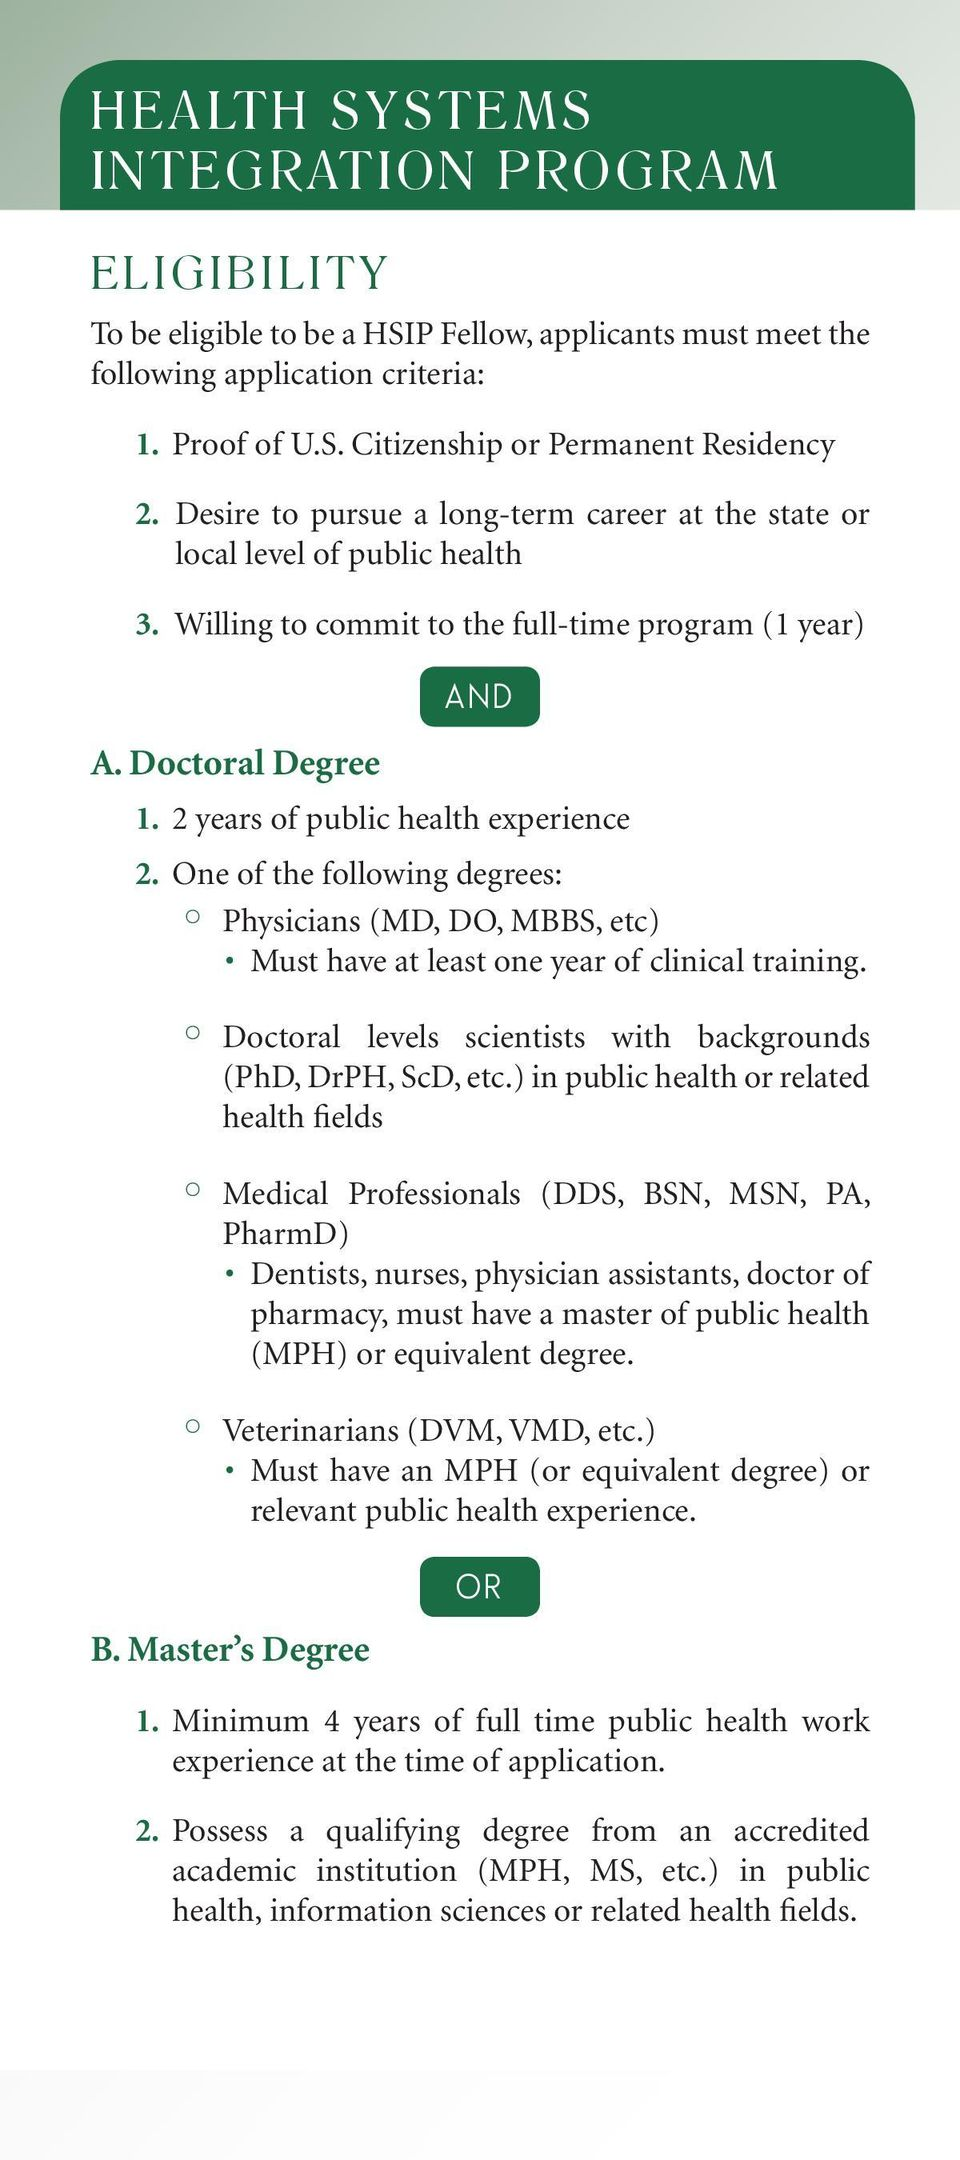 2 years of public health experience 2. One of the following degrees: Physicians (MD, DO, MBBS, etc) Must have at least one year of clinical training.